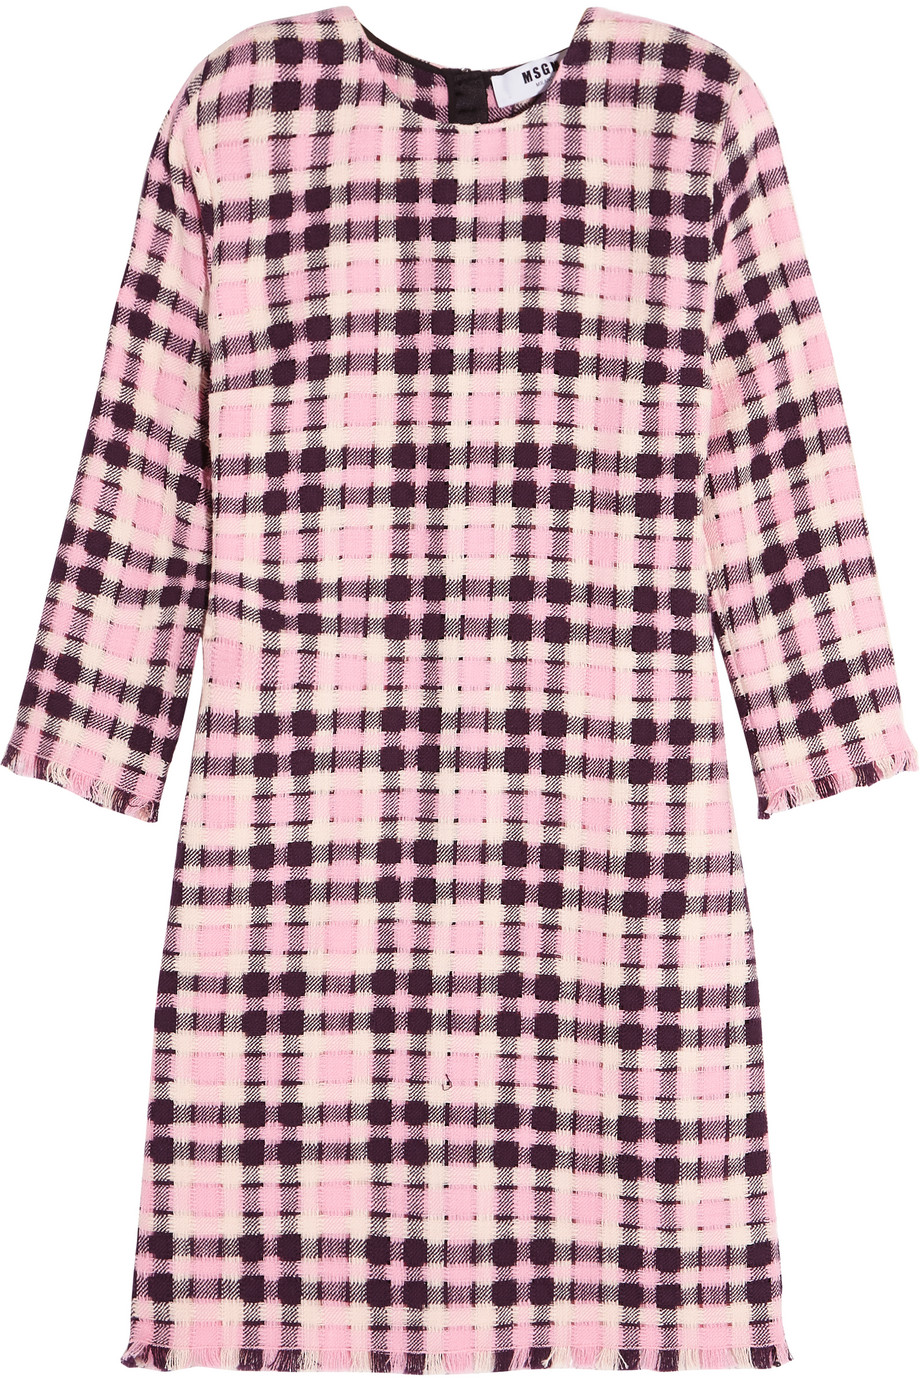 MSGM Open-Weave Cotton-Tweed Mini Dress, Pink, Women's - Plaid, Size: 38